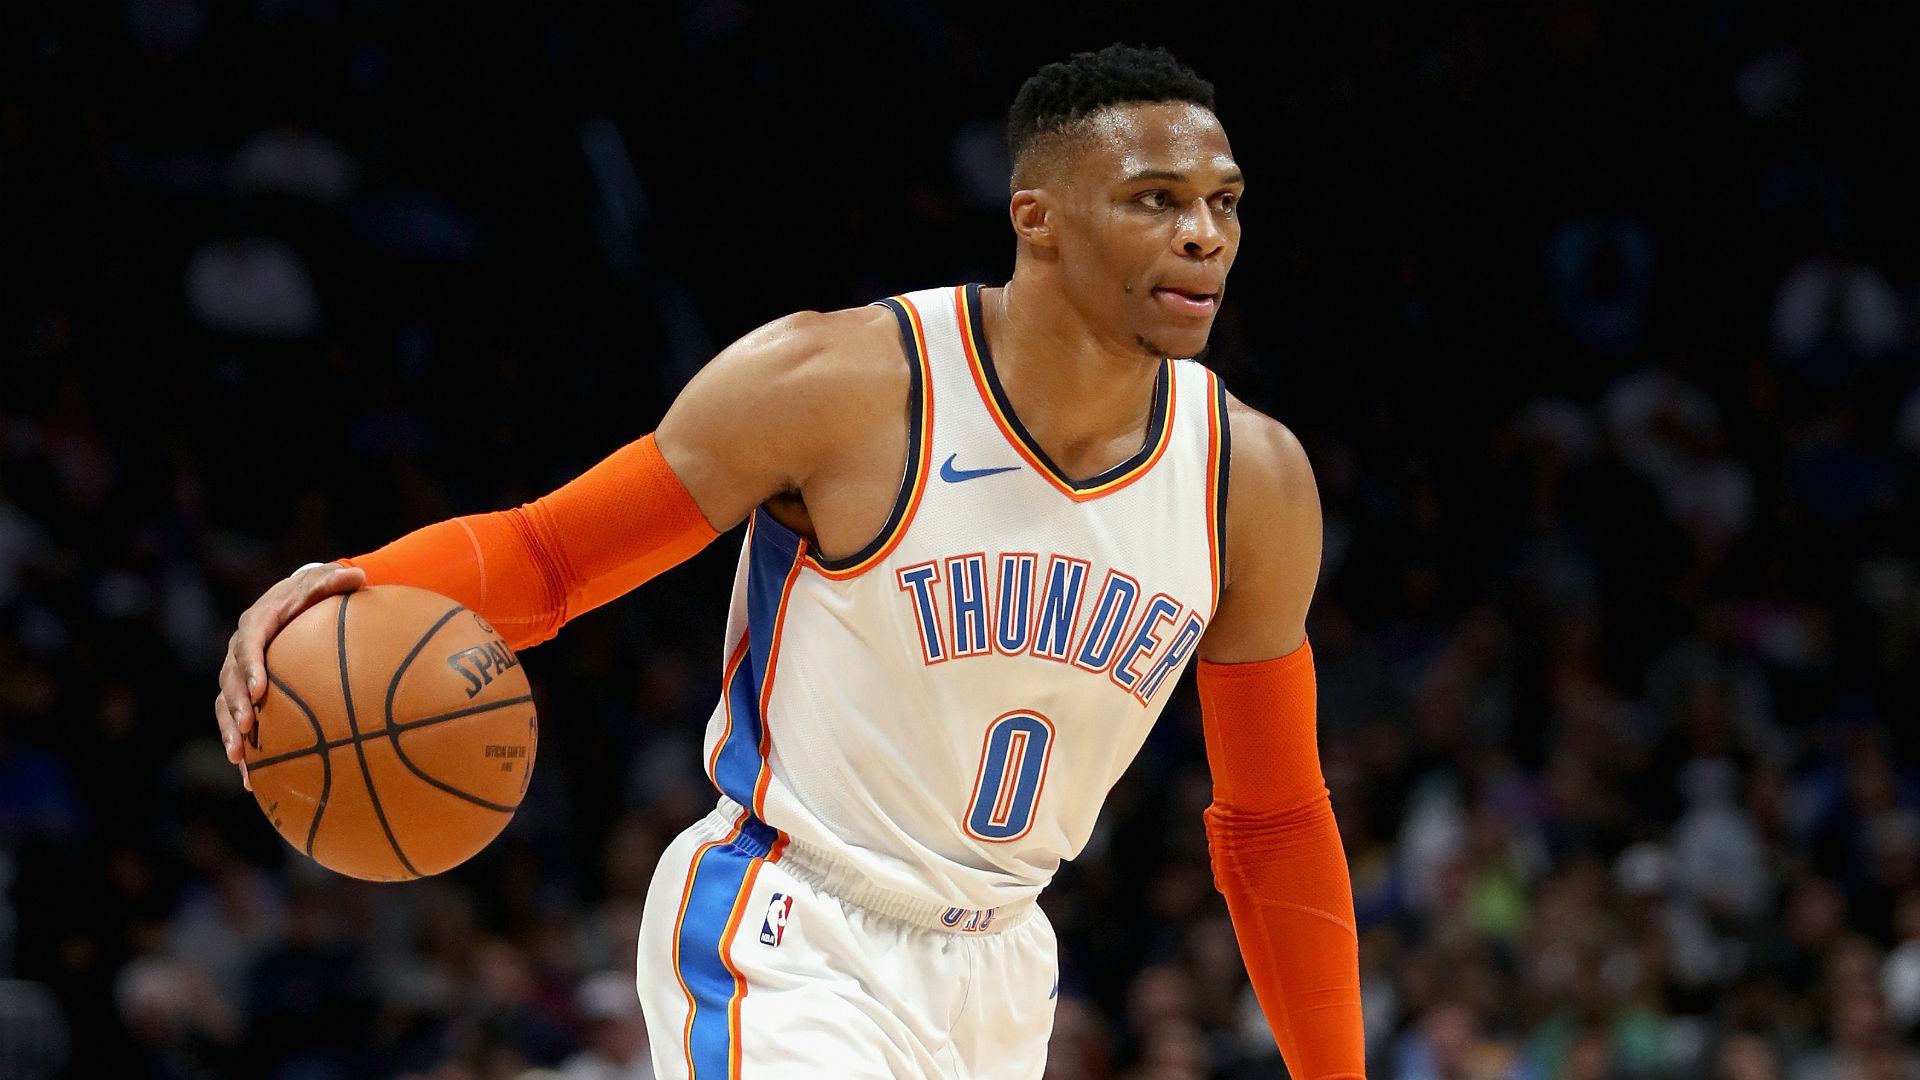 WATCH: Westbrook serves up outrageous, no-look assist